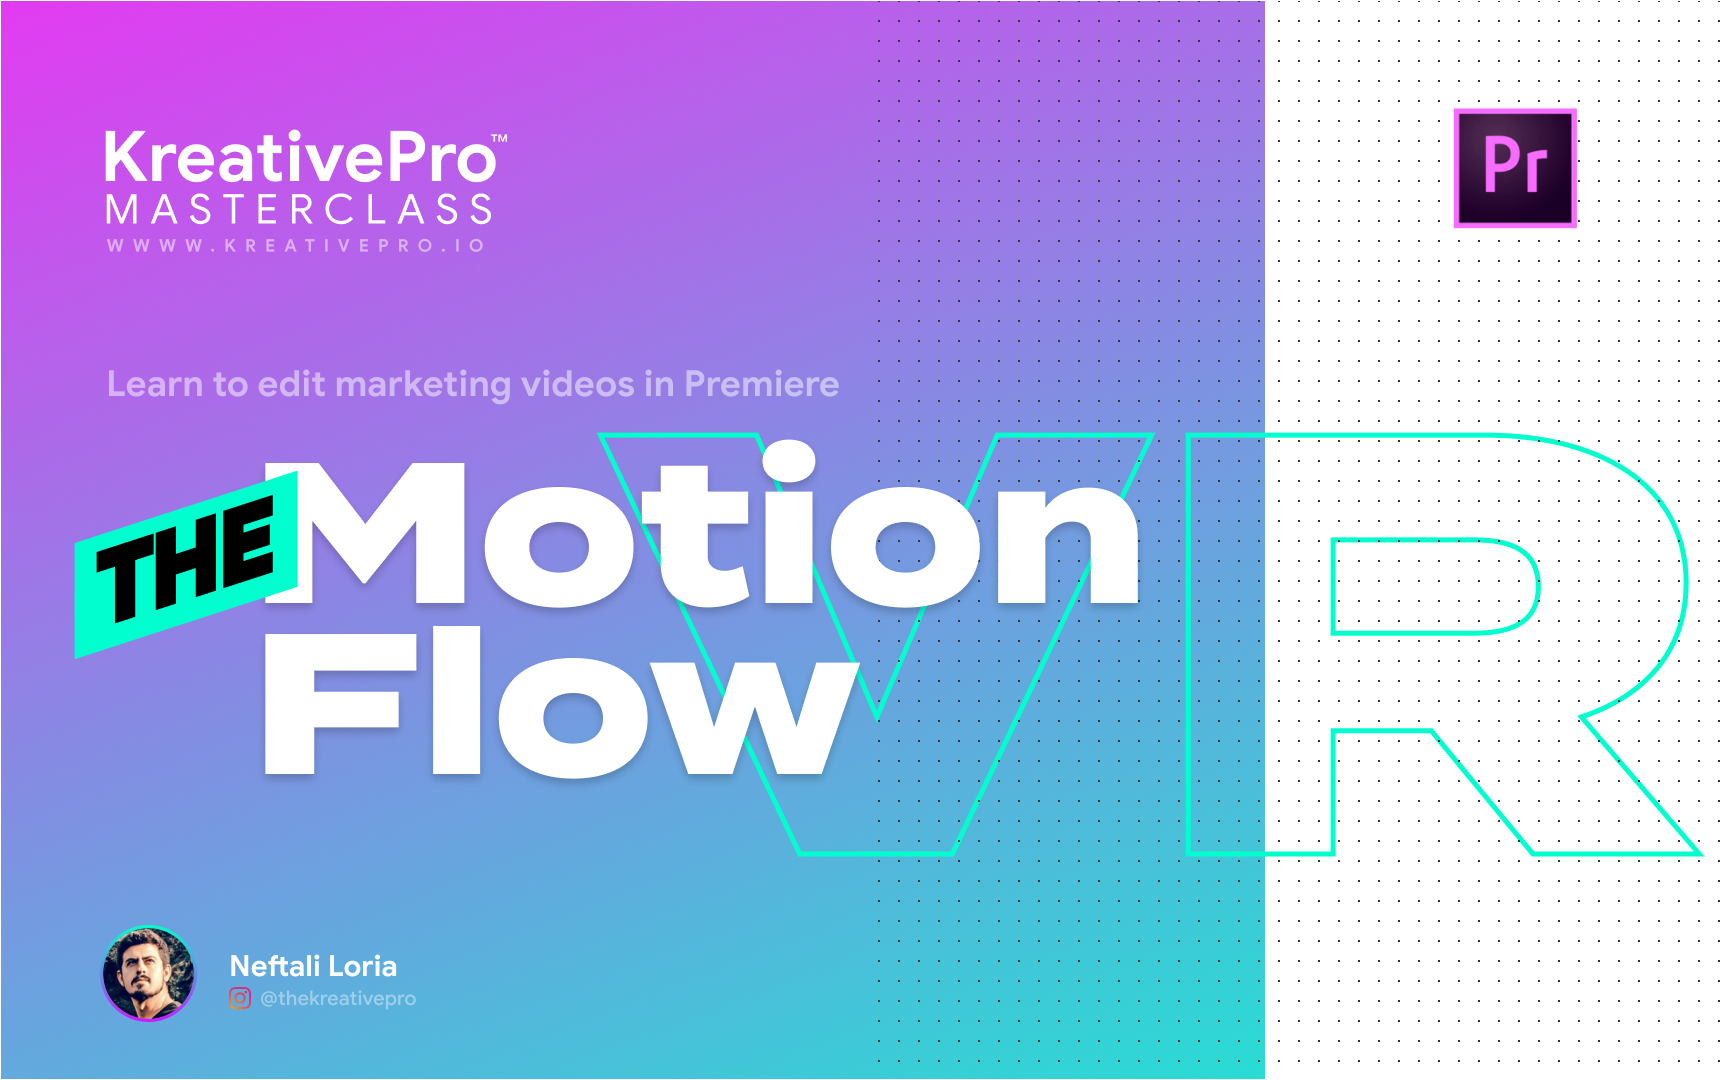 Adobe Premiere 3.0 - The Motion Flow